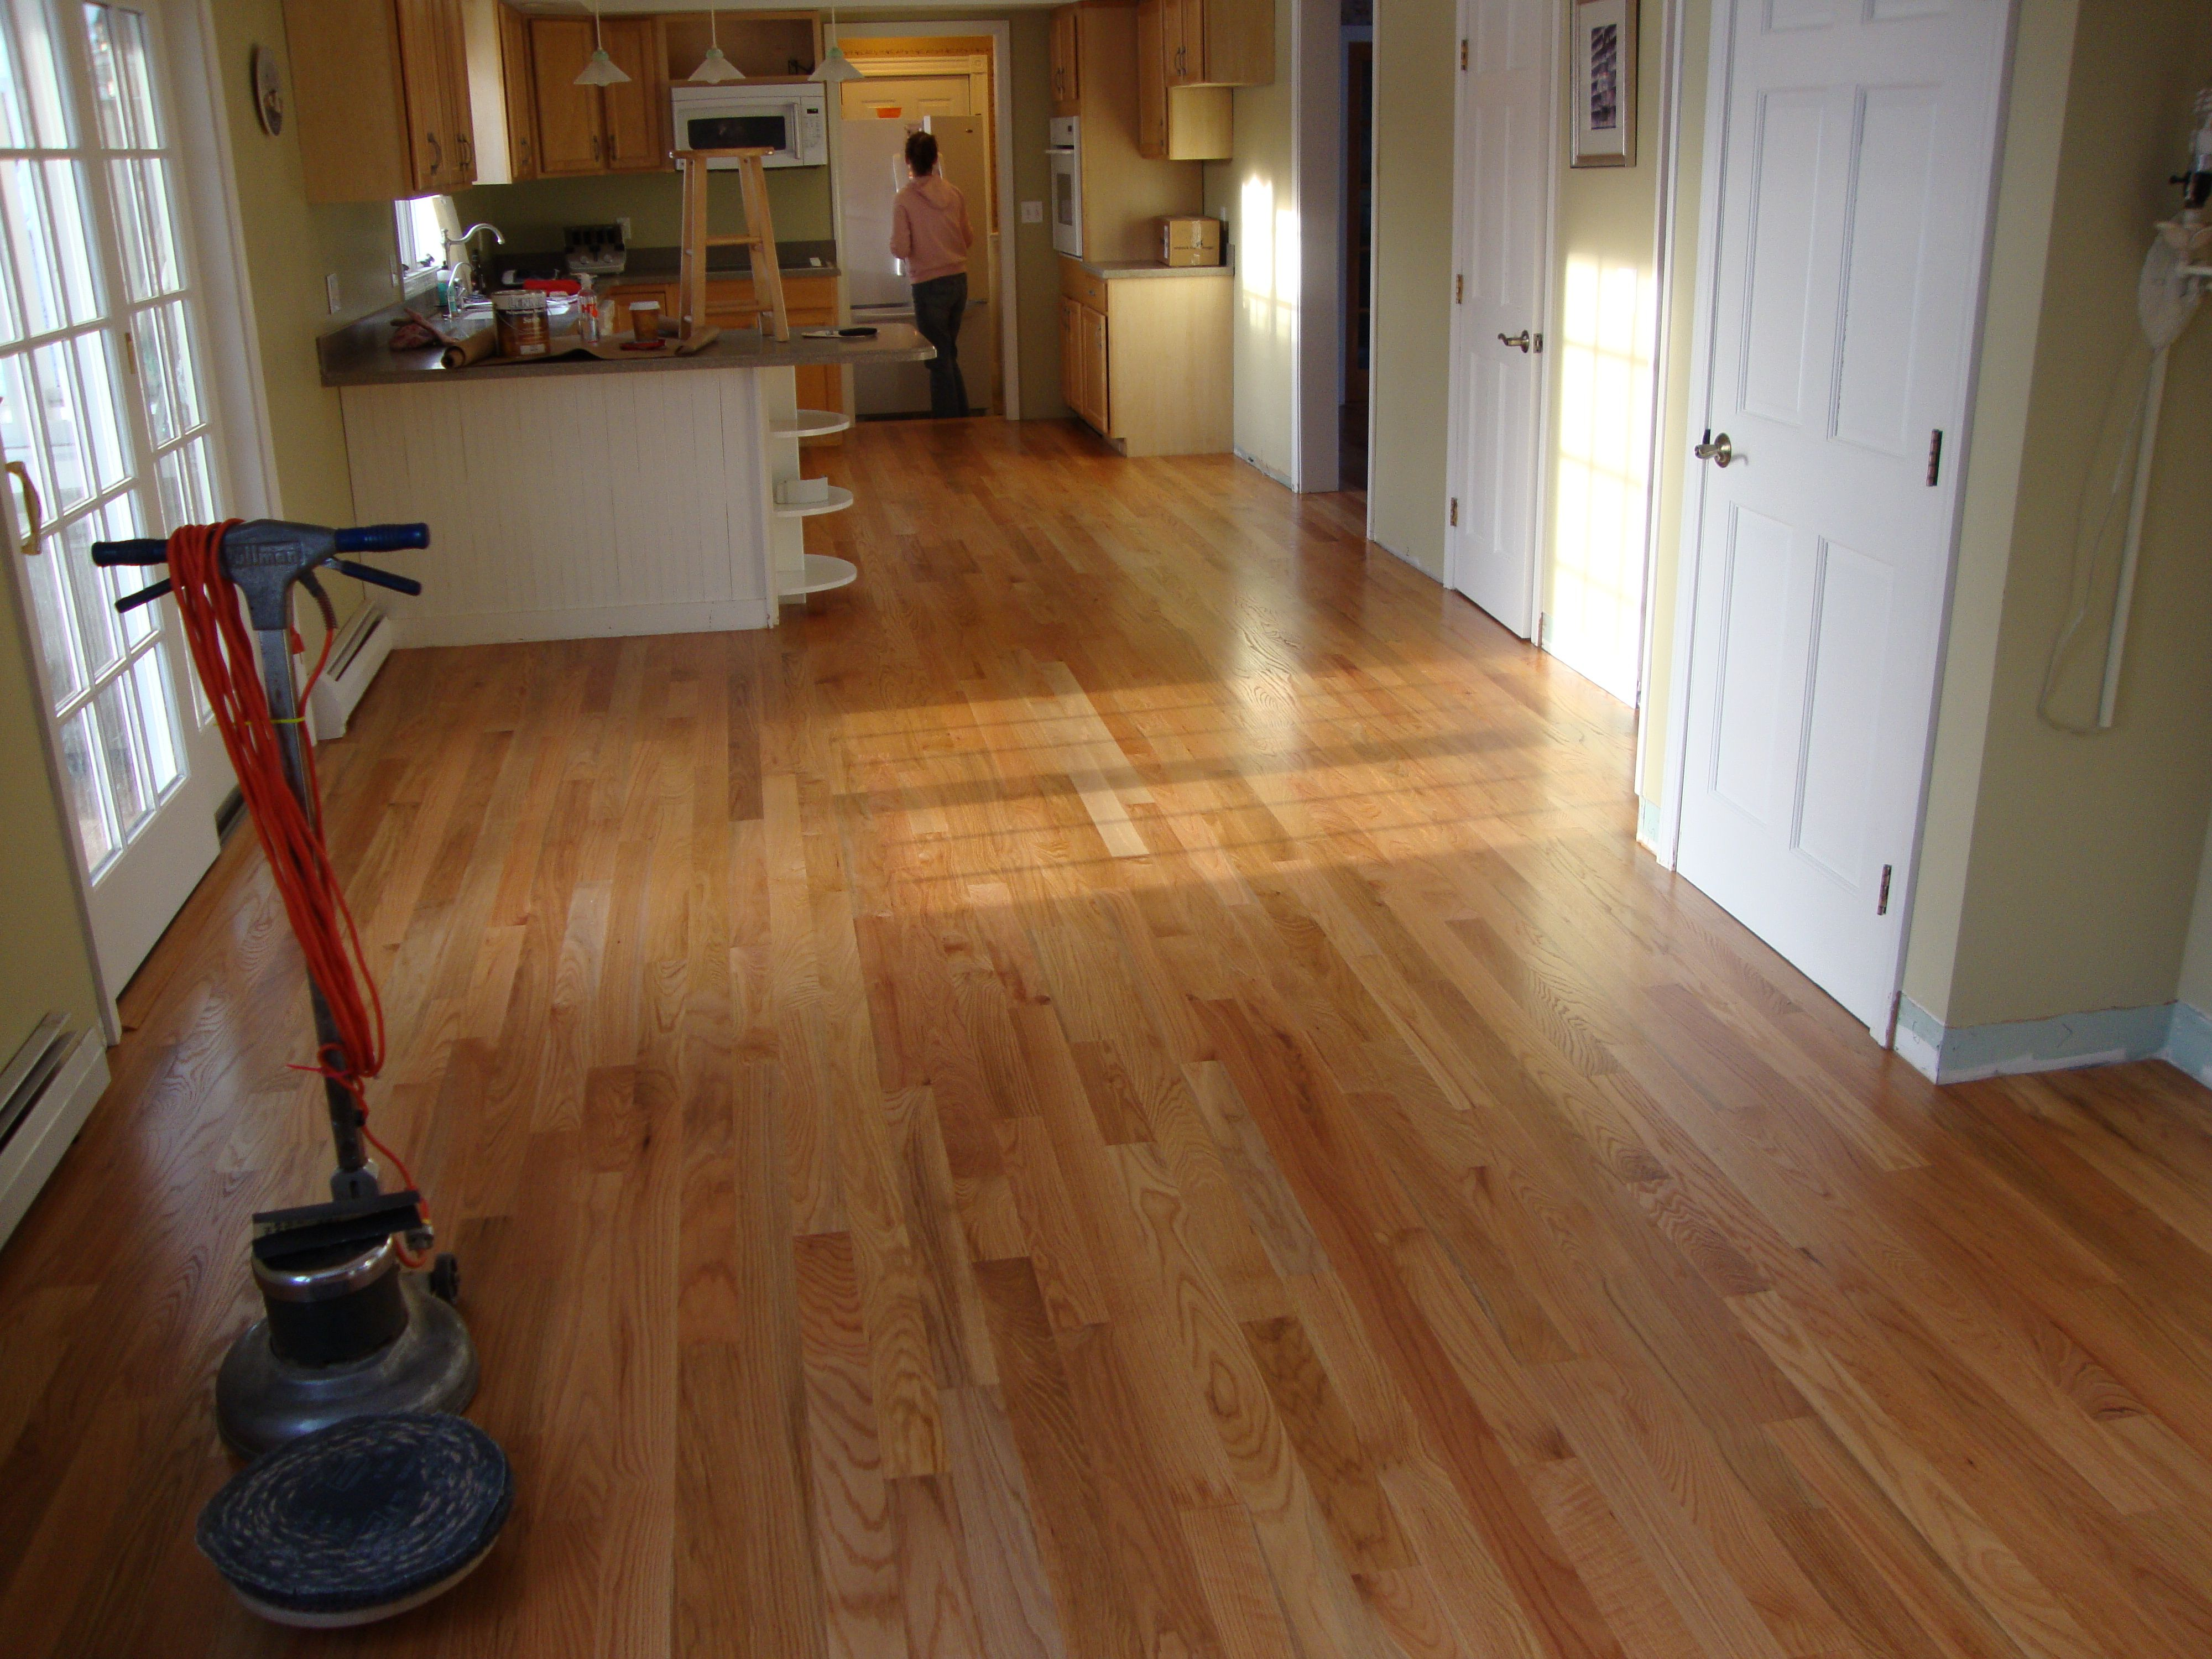 Solid Wood Floor In Kitchen Hardwood Floors Red Oak Hardwood Floor Gallery Cfc Hardwood